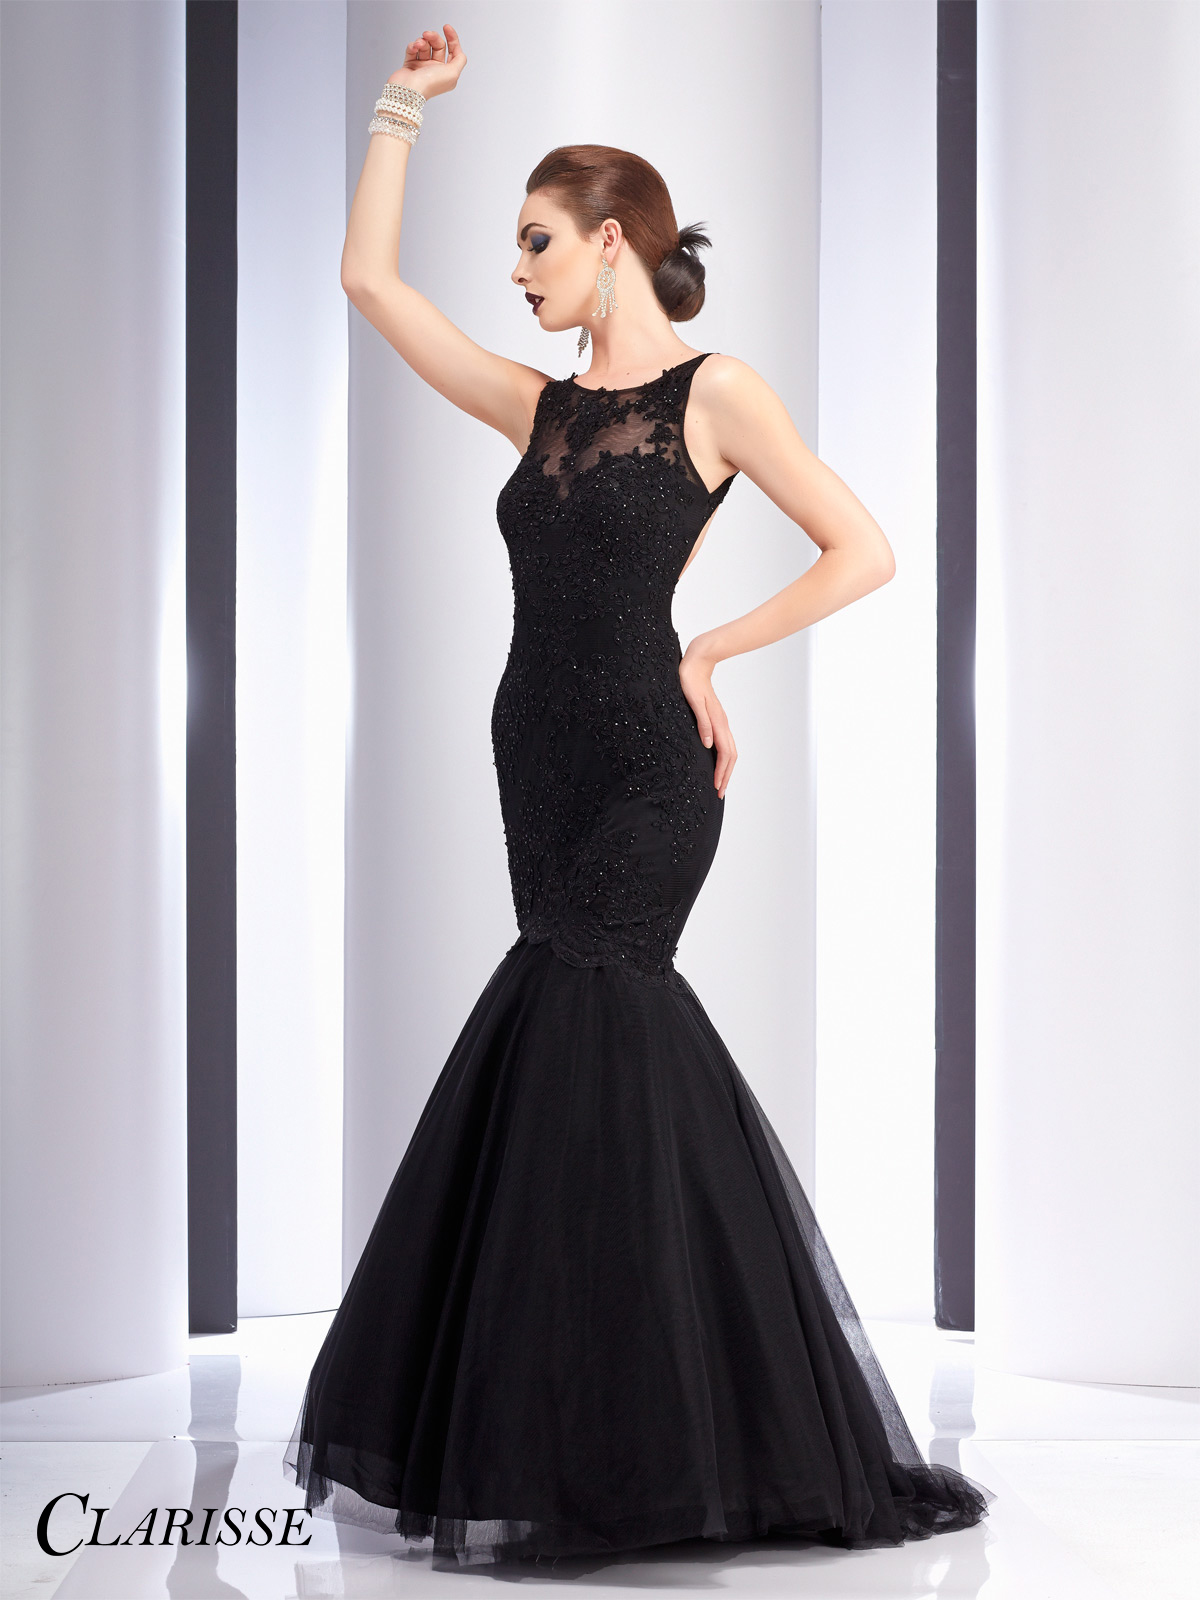 Clarisse Lace Mermaid Prom Dress 2714